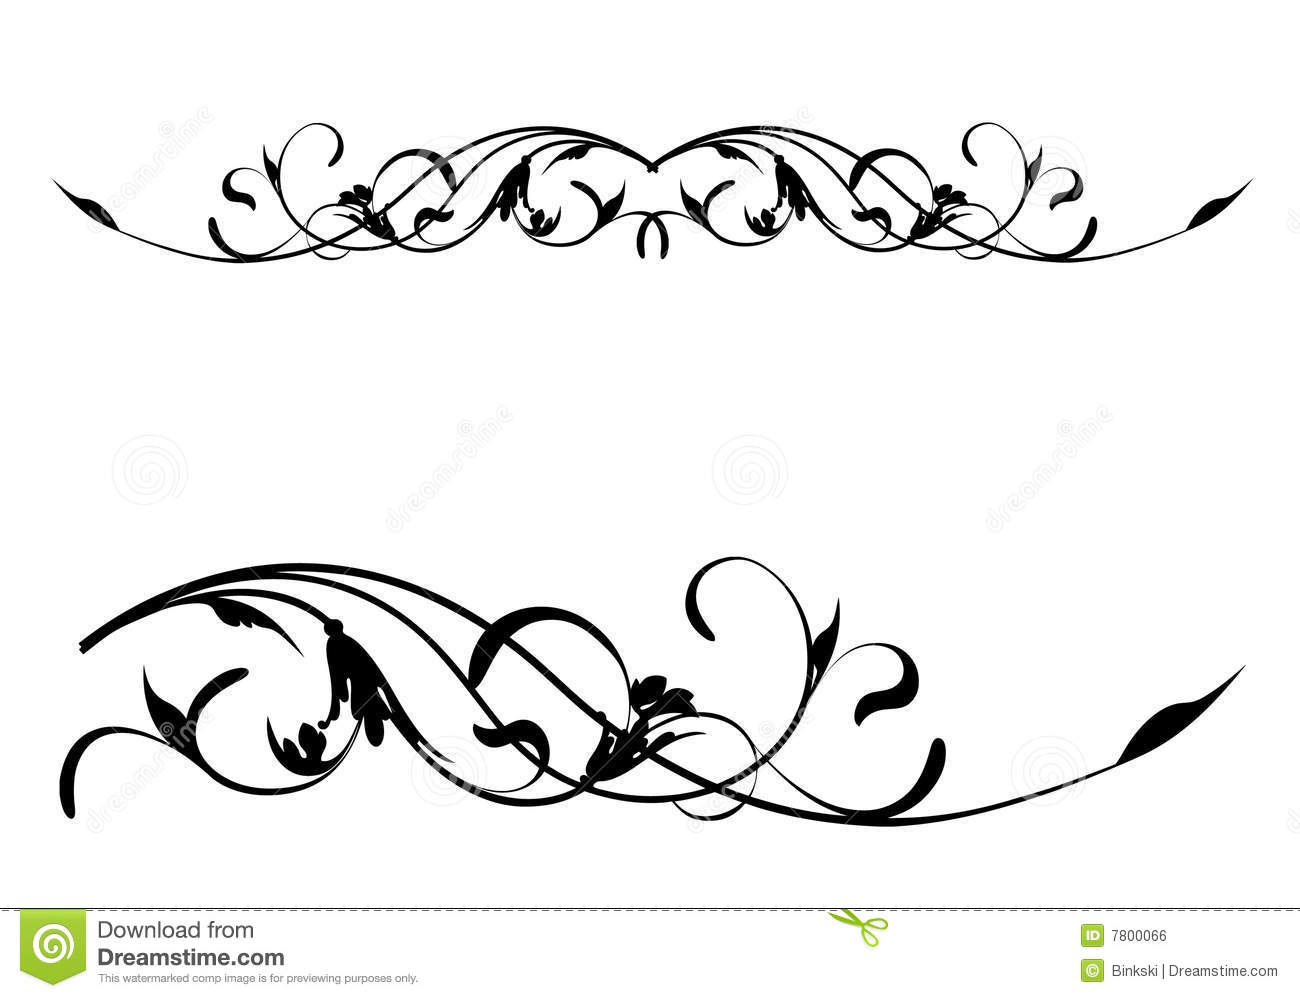 Free scroll images clip art.